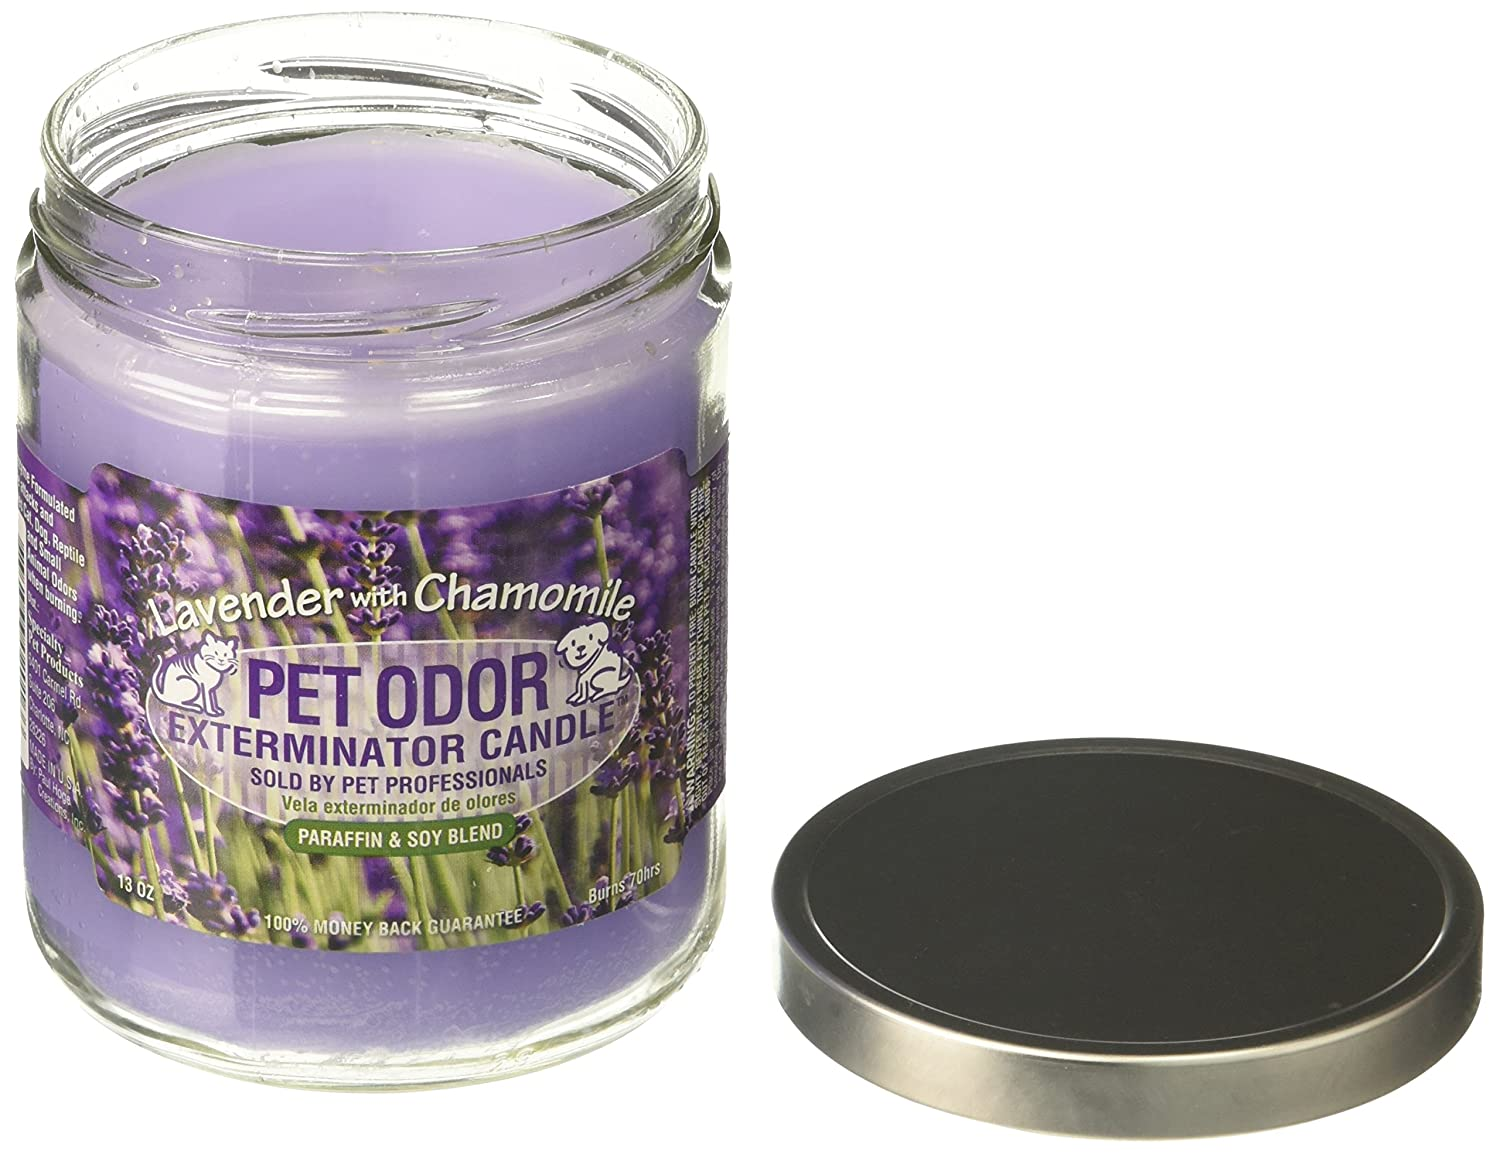 Lavender Pet Odor Exterminator Candle, Lavender with Chamomile,13 oz